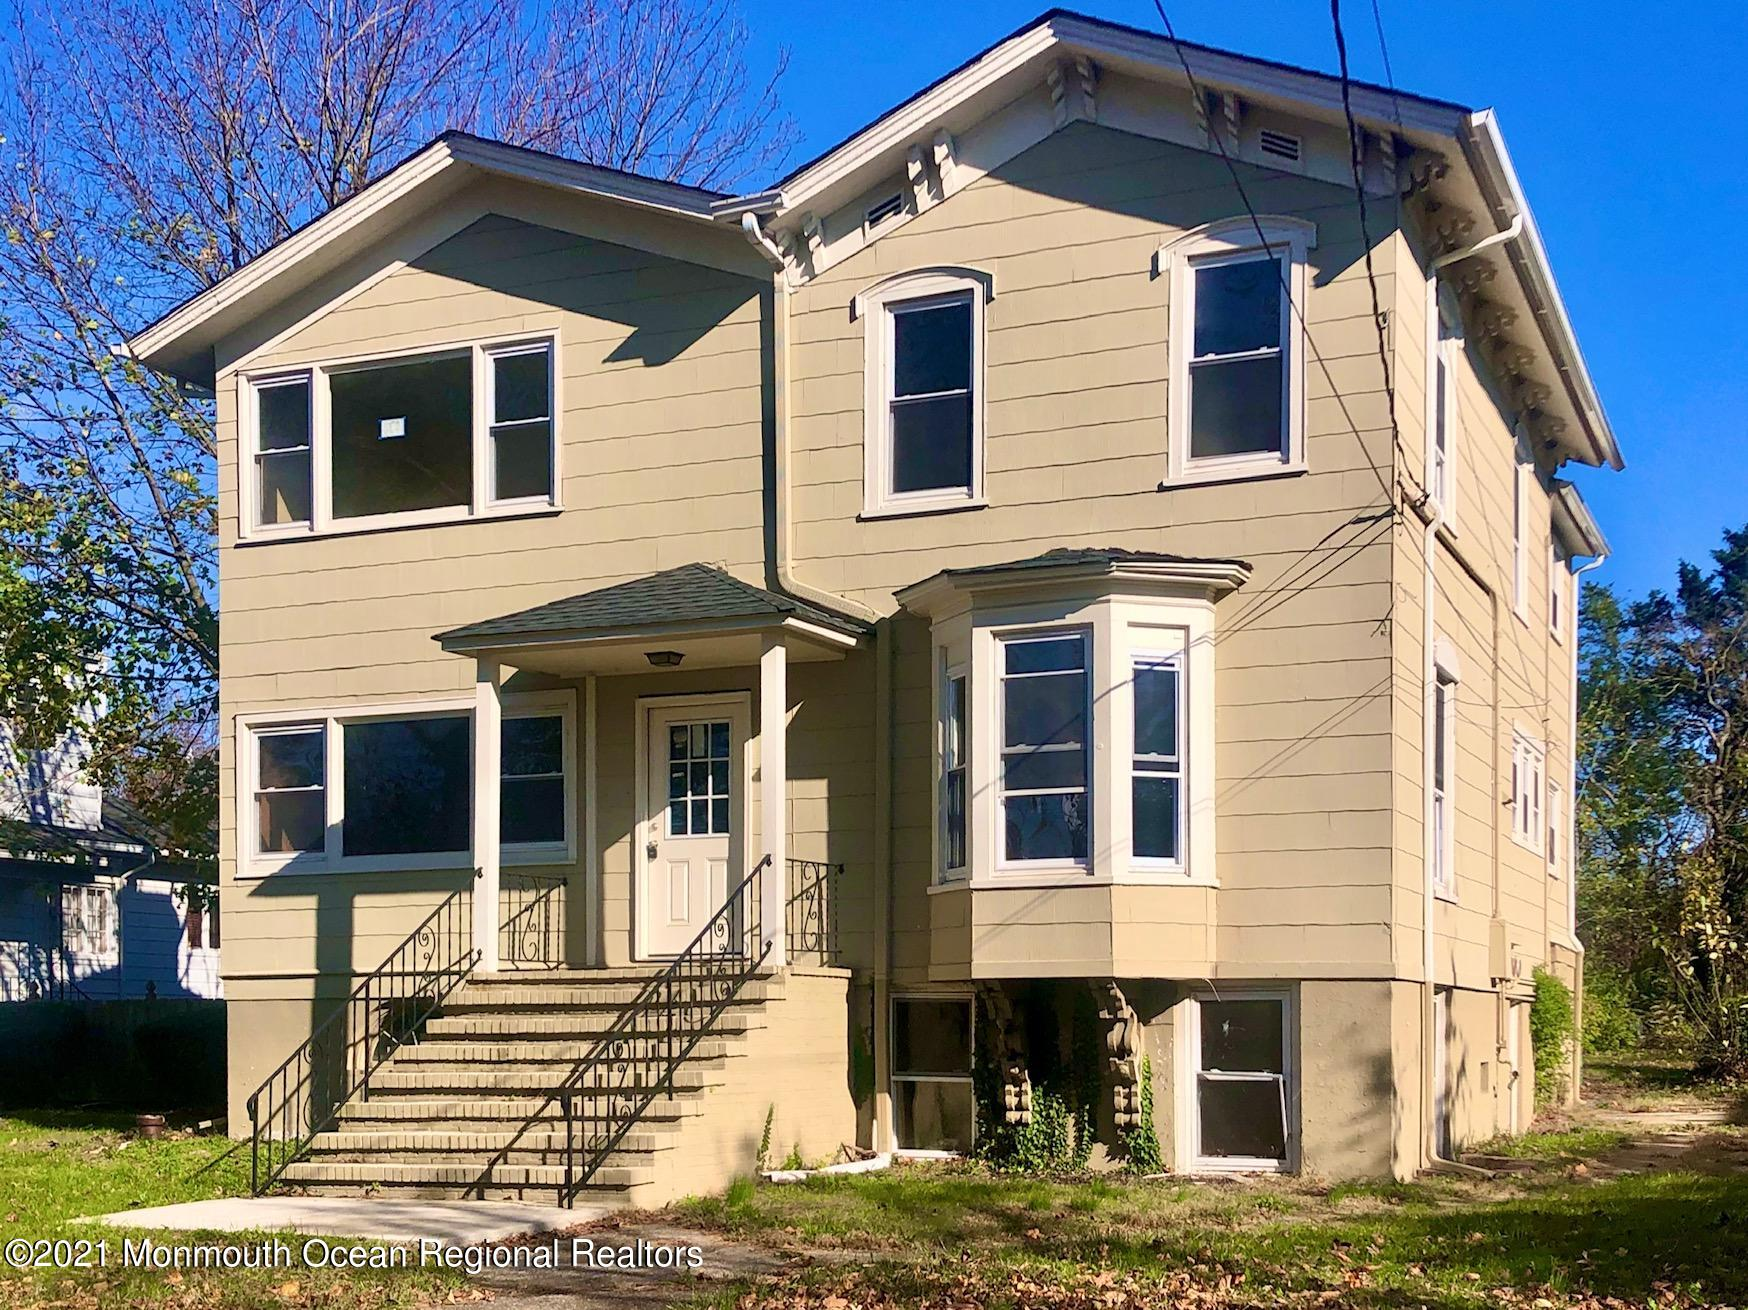 619 Main Street, Toms River, New Jersey 08753, 4 Bedrooms Bedrooms, ,3 BathroomsBathrooms,Single Family,For Sale,619 Main Street,2,22108488